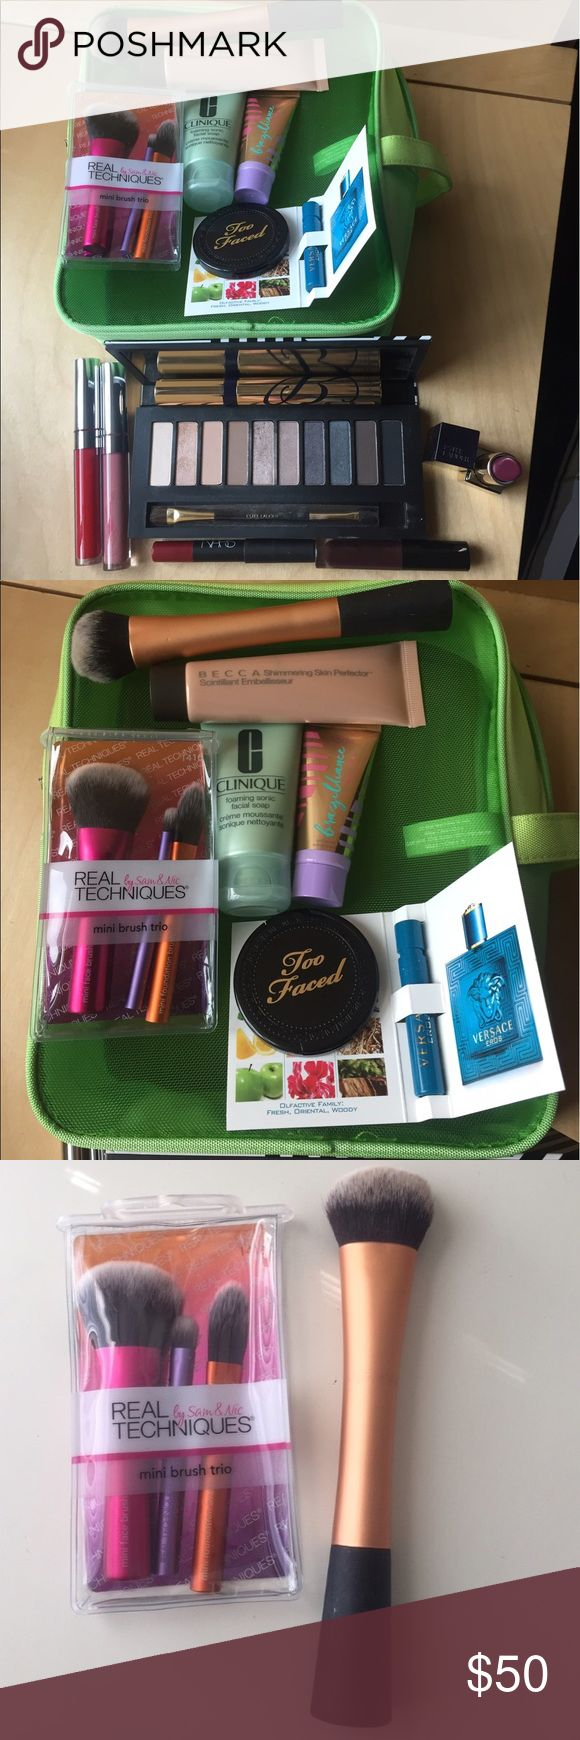 💋💋 HUGE MAKEUP BUNDLE Amazing bundle for the makeup lover including: Clinique mesh makeup bag and travel cleanser, Versace perfume sample, too faced mini chocolate soleil bronzer, tarte travel size tanner, 4 real techniques brushes, Estée Lauder eyeshadow palette and full size mascara, 2 color pop ultra matte lips (creeper and Bianca), mini Anastasia Beverly Hills lipgloss, mini NARS lip pencil in cruella and plum colored full size Estée Lauder lipstick. Over $250 value. All items…